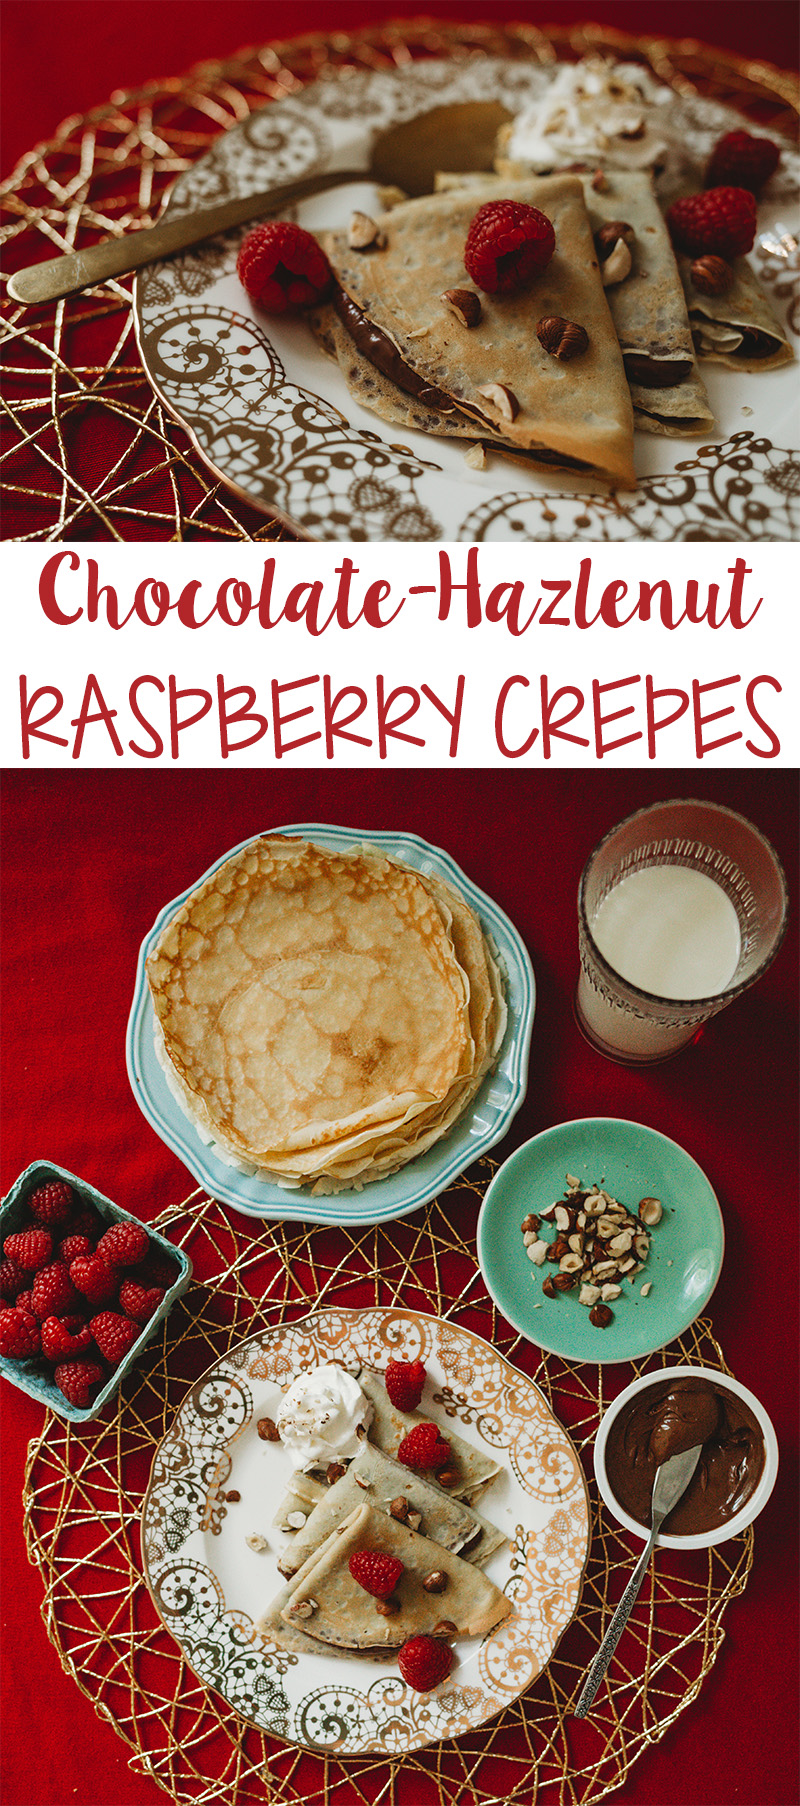 Chocolate Hazelnut Raspberry Crepes